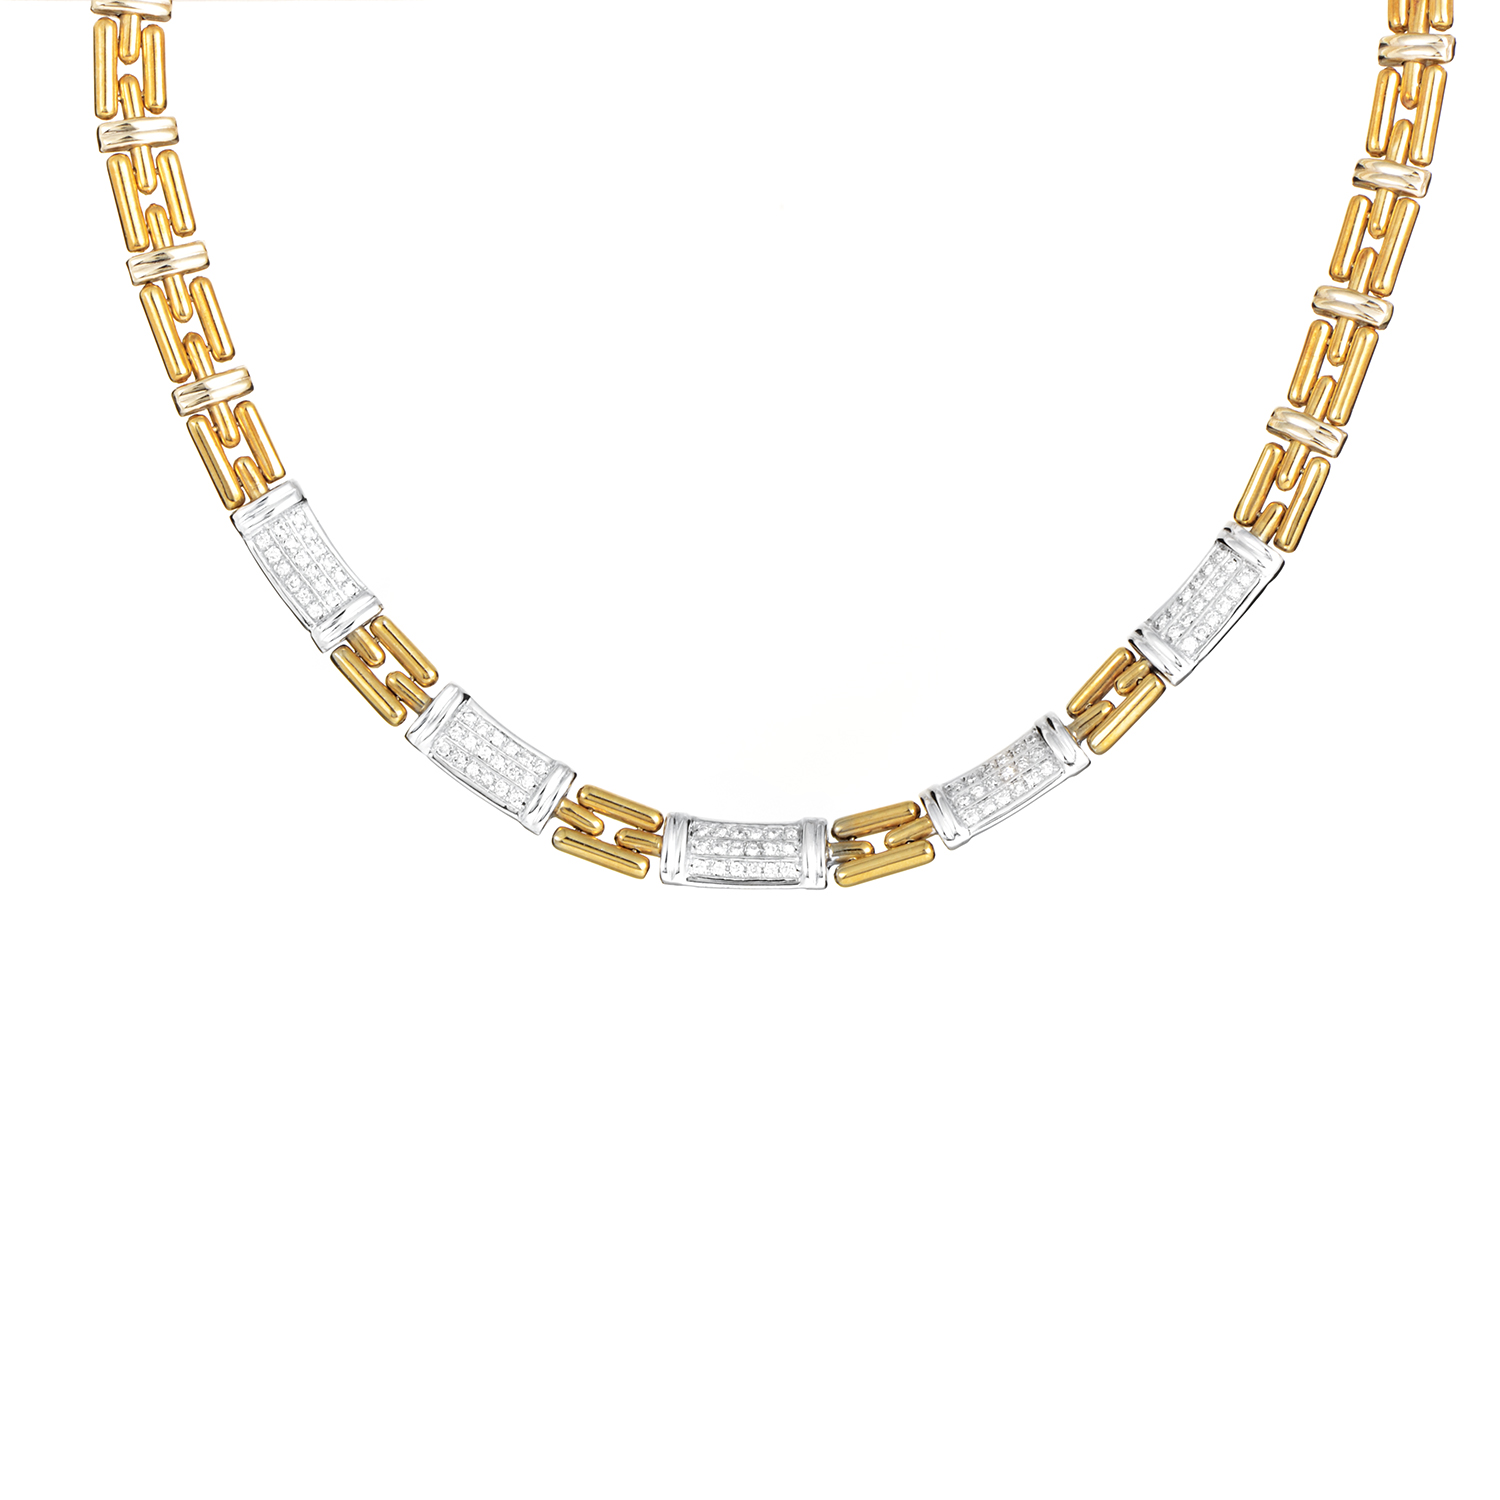 Chimento Women's 18K Multi-Tone Gold & Diamond Link Necklace